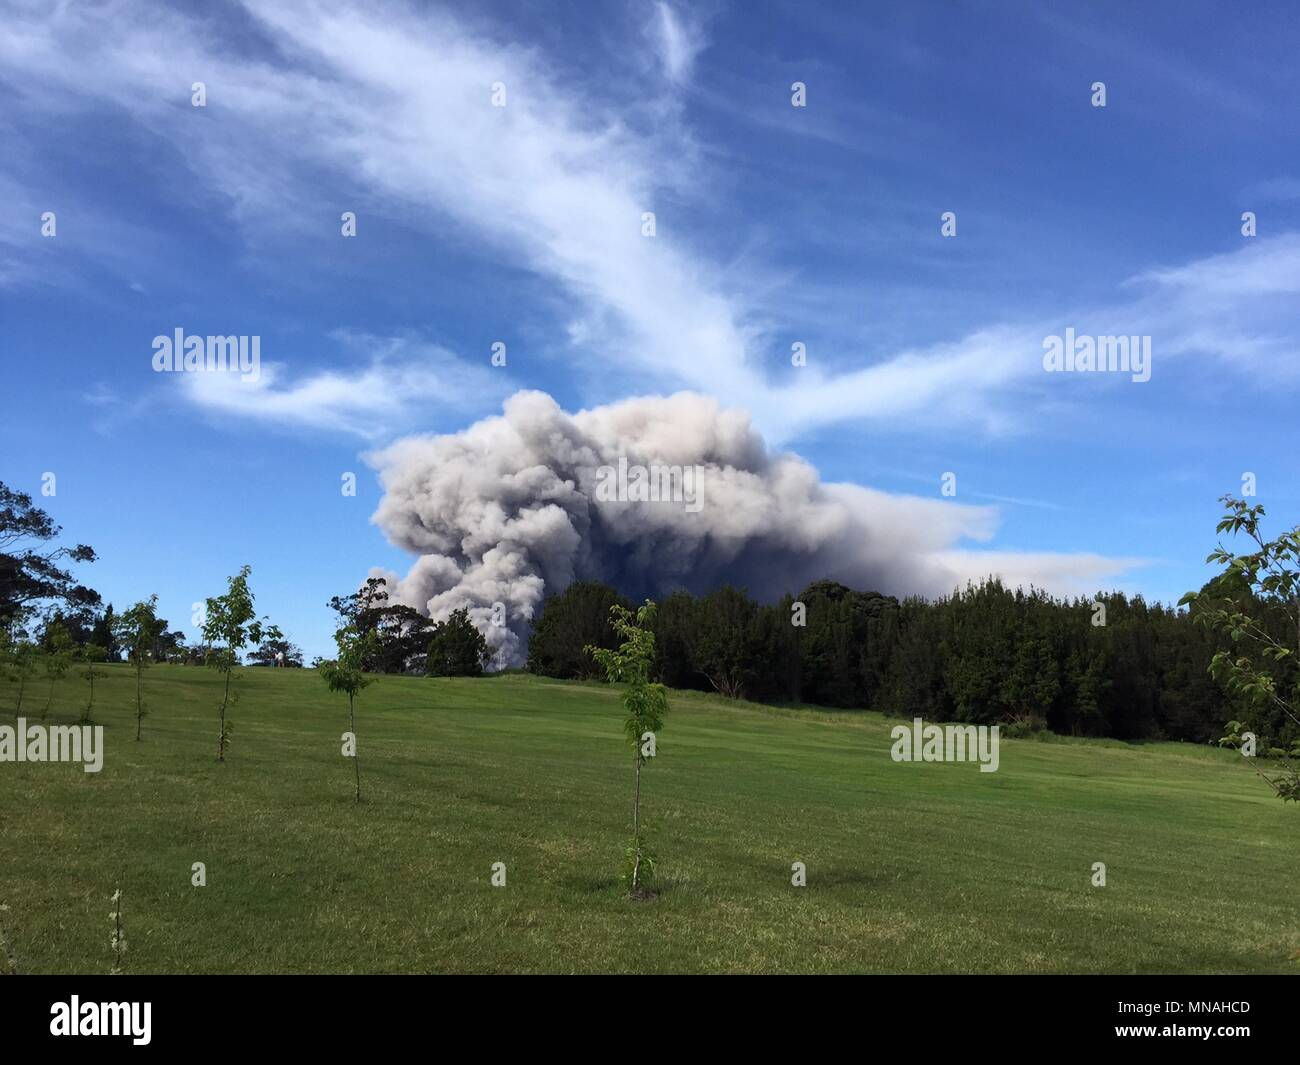 Kilauea Volcano, Hawaii. 15th may 2018. A grey ash plume rises from the Halemaumau crater in the Kilauea volcano seen from the Volcano Golf Course May 15, 2018 in Hawaii. The recent eruption continues destroying homes, forcing evacuations and spewing lava and poison gas on the Big Island of Hawaii. Credit: Planetpix/Alamy Live NewsStock Photo